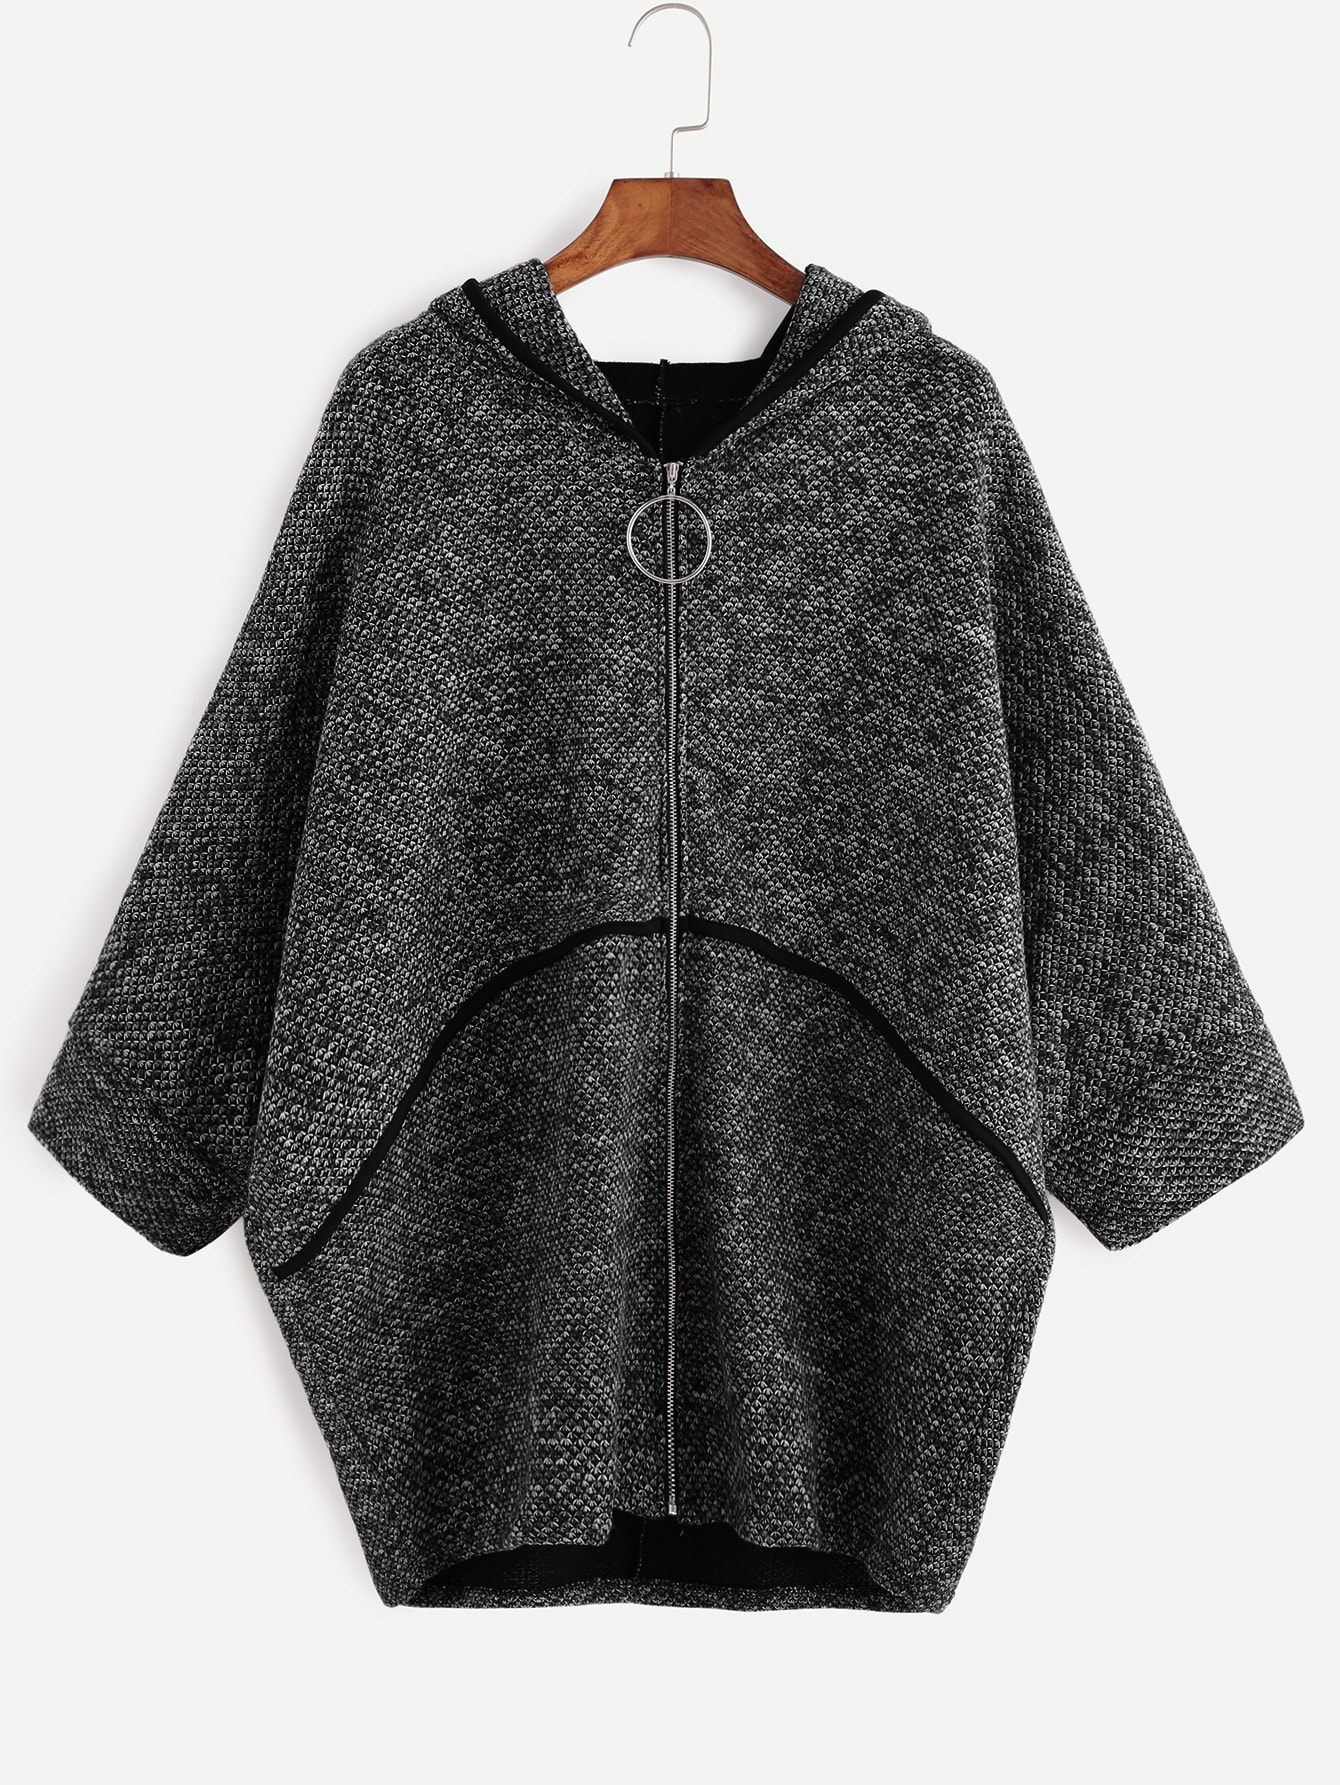 Dark Grey Batwing Sleeve Zipper Up Hooded Coat outer161110002